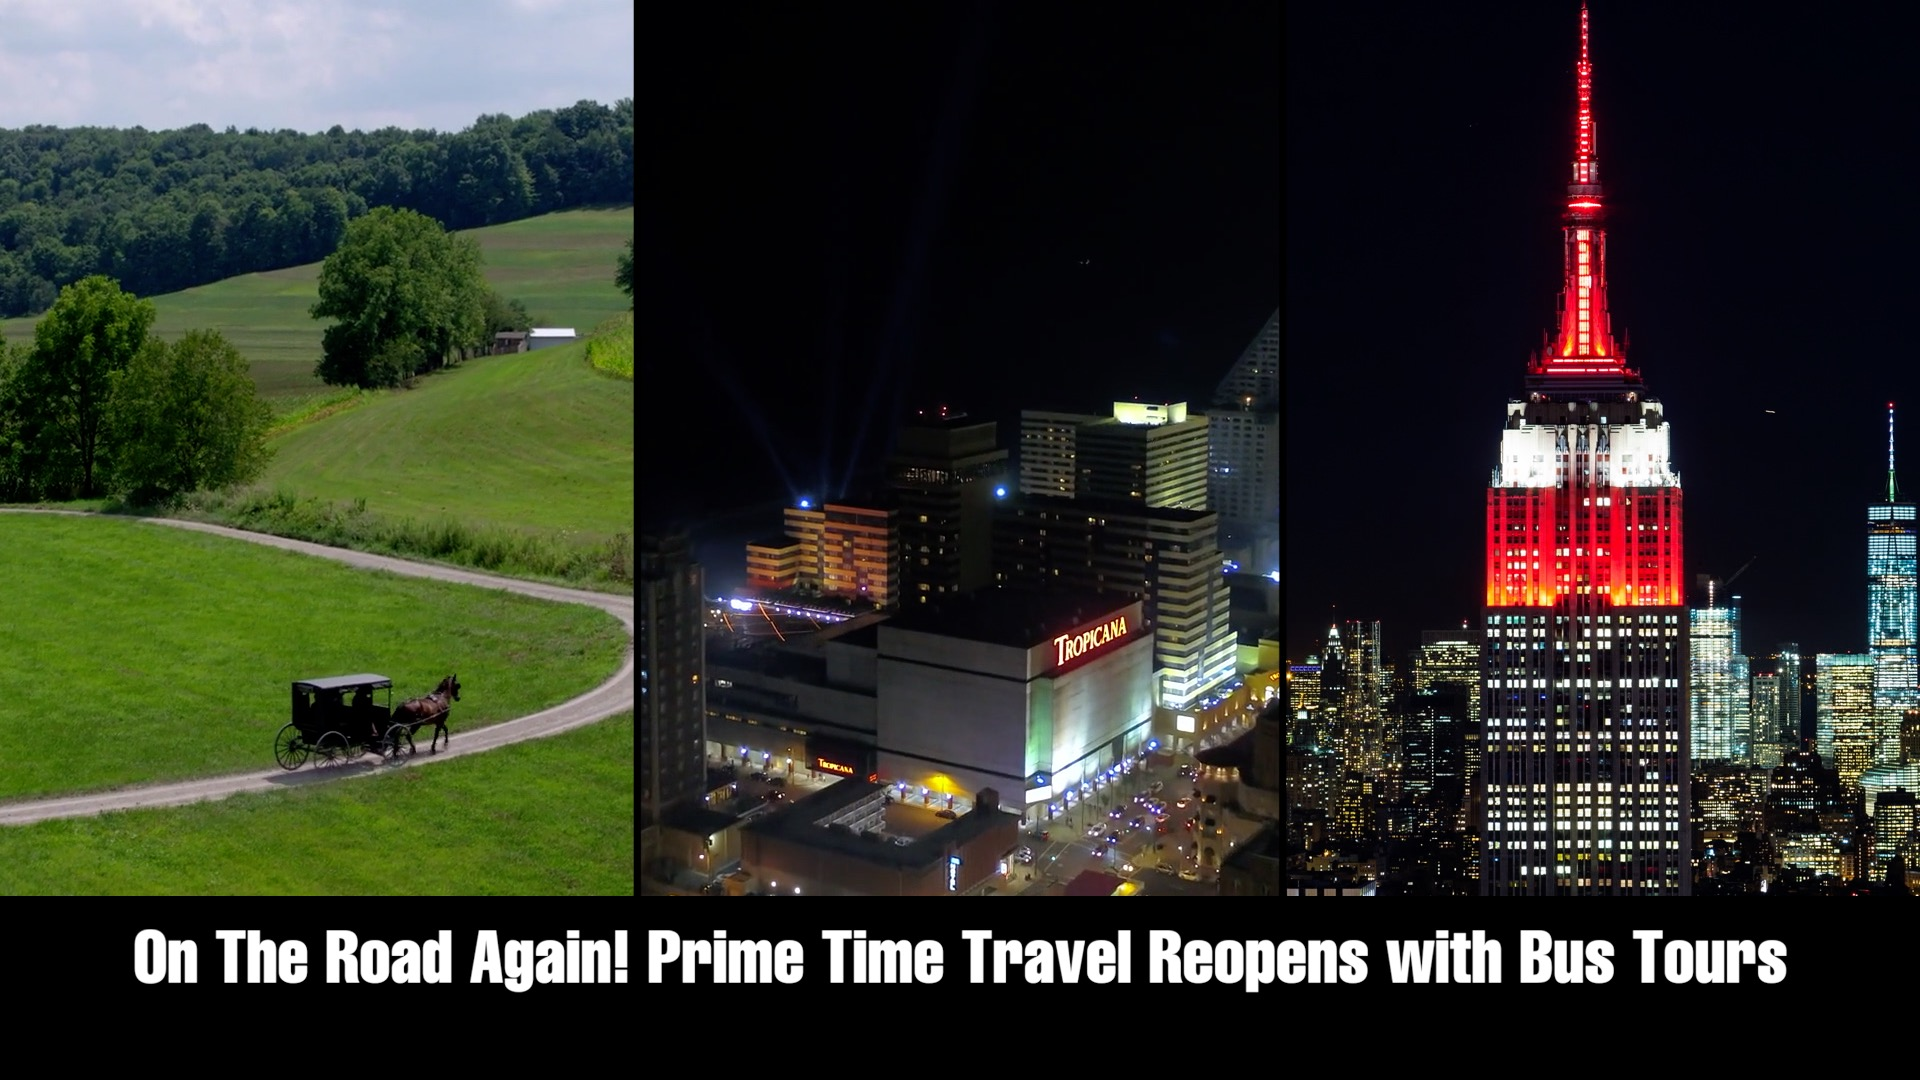 On The Road Again! Prime Time Travel Reopens with Bus Tours